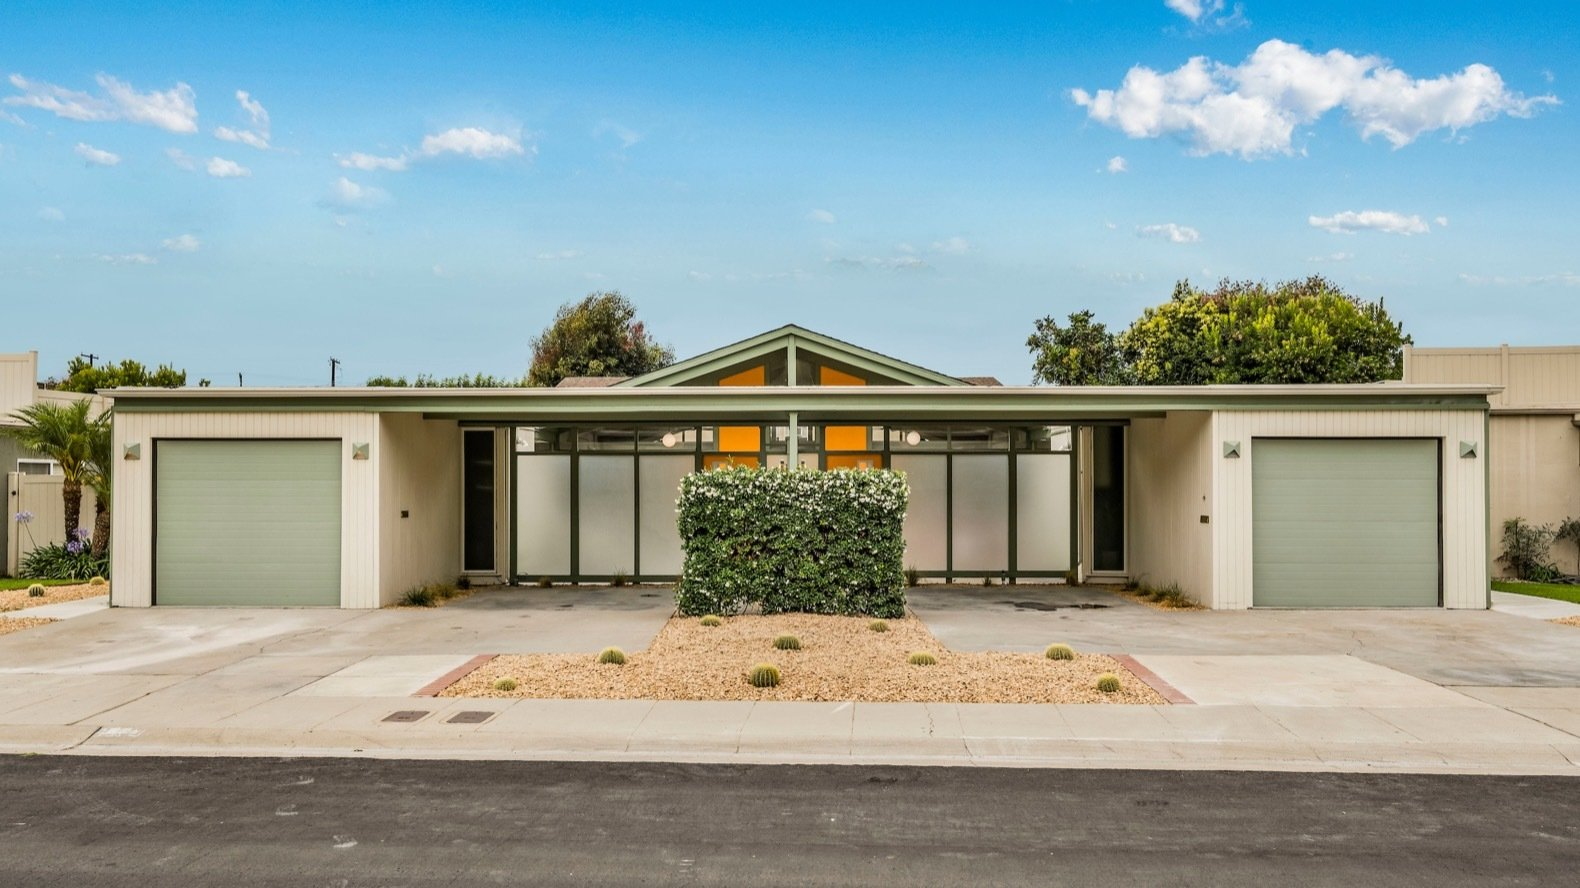 Located in Long Beach's Los Cerritos/Virginia Country Club neighborhood, the duplex occupies a 7,306-square-foot lot.